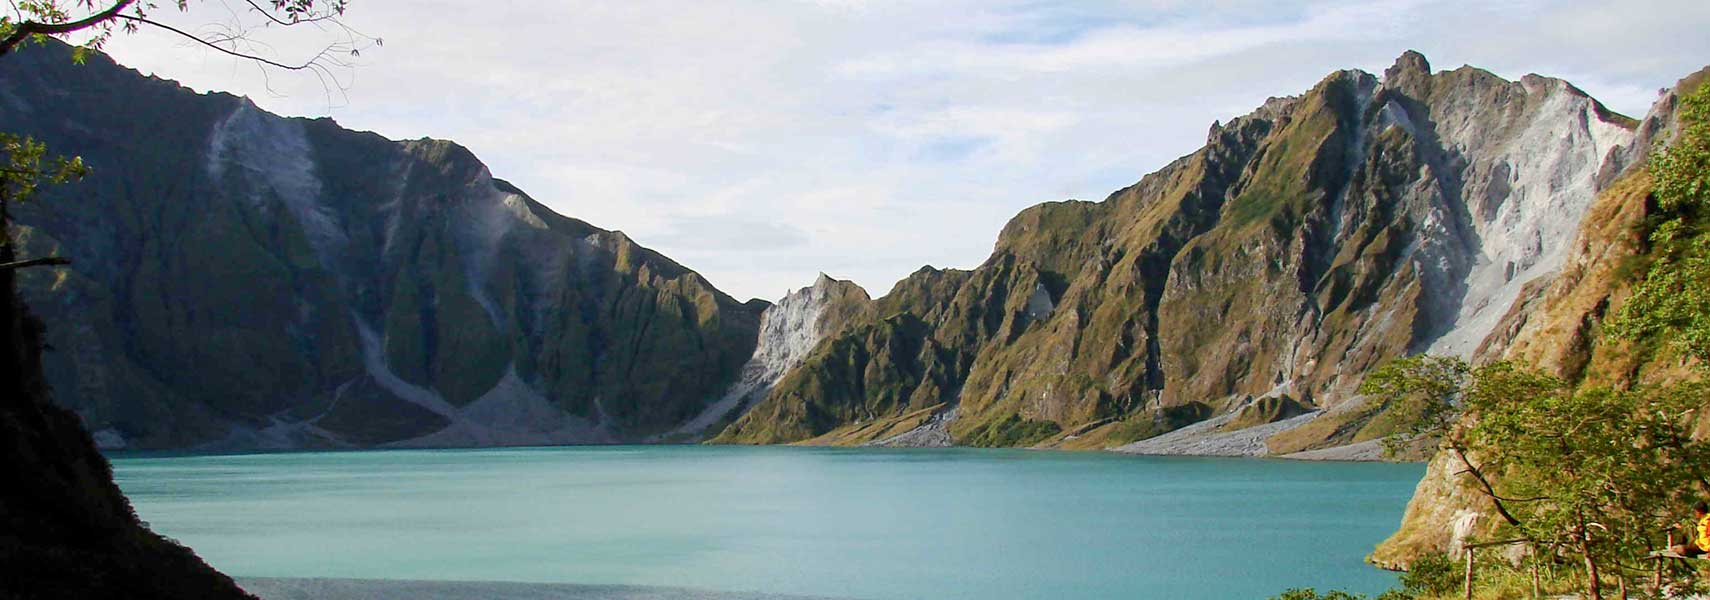 Mount Pinatubo, Cabusilan Mountains, Luzon